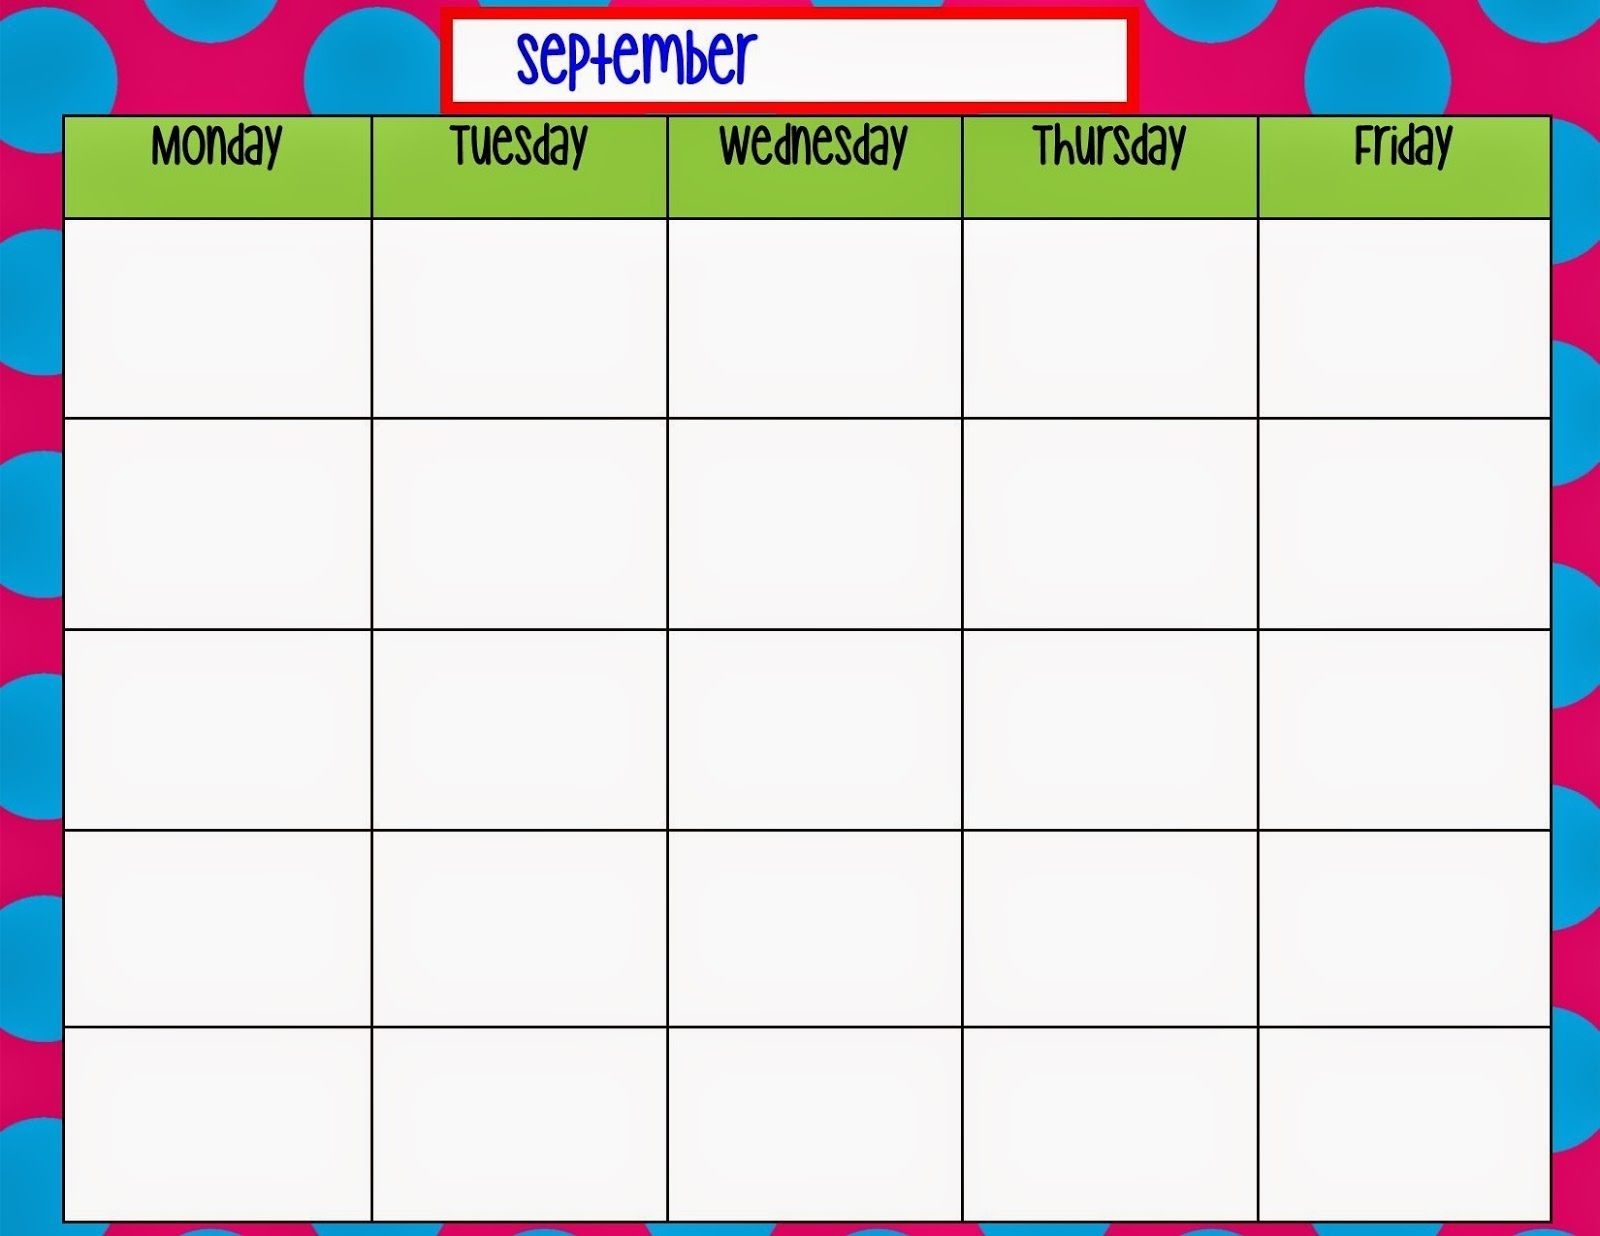 Monday Through Friday Calendar Template | Preschool | Weekly for Monday Through Friday Calendar Printable